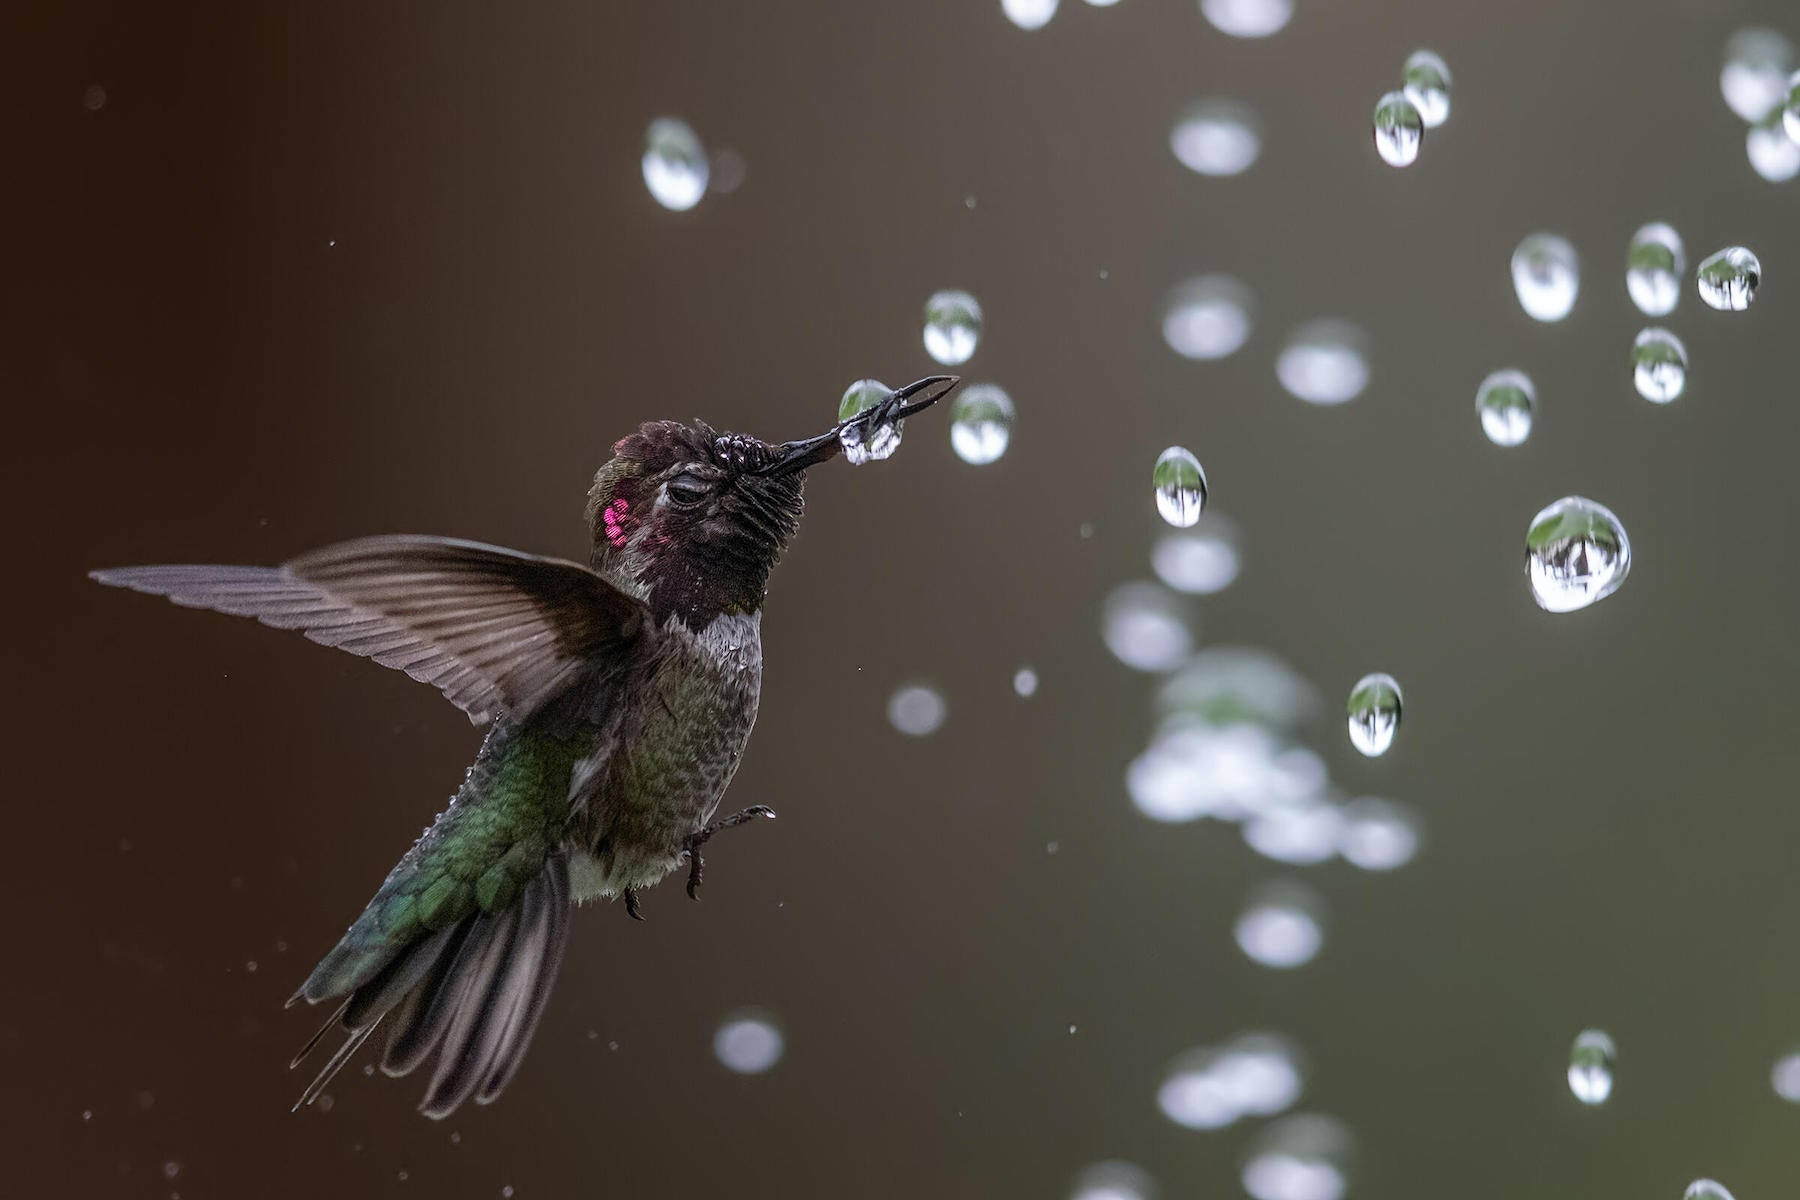 What is Photography - What is Photography Defined As - Bird Photos